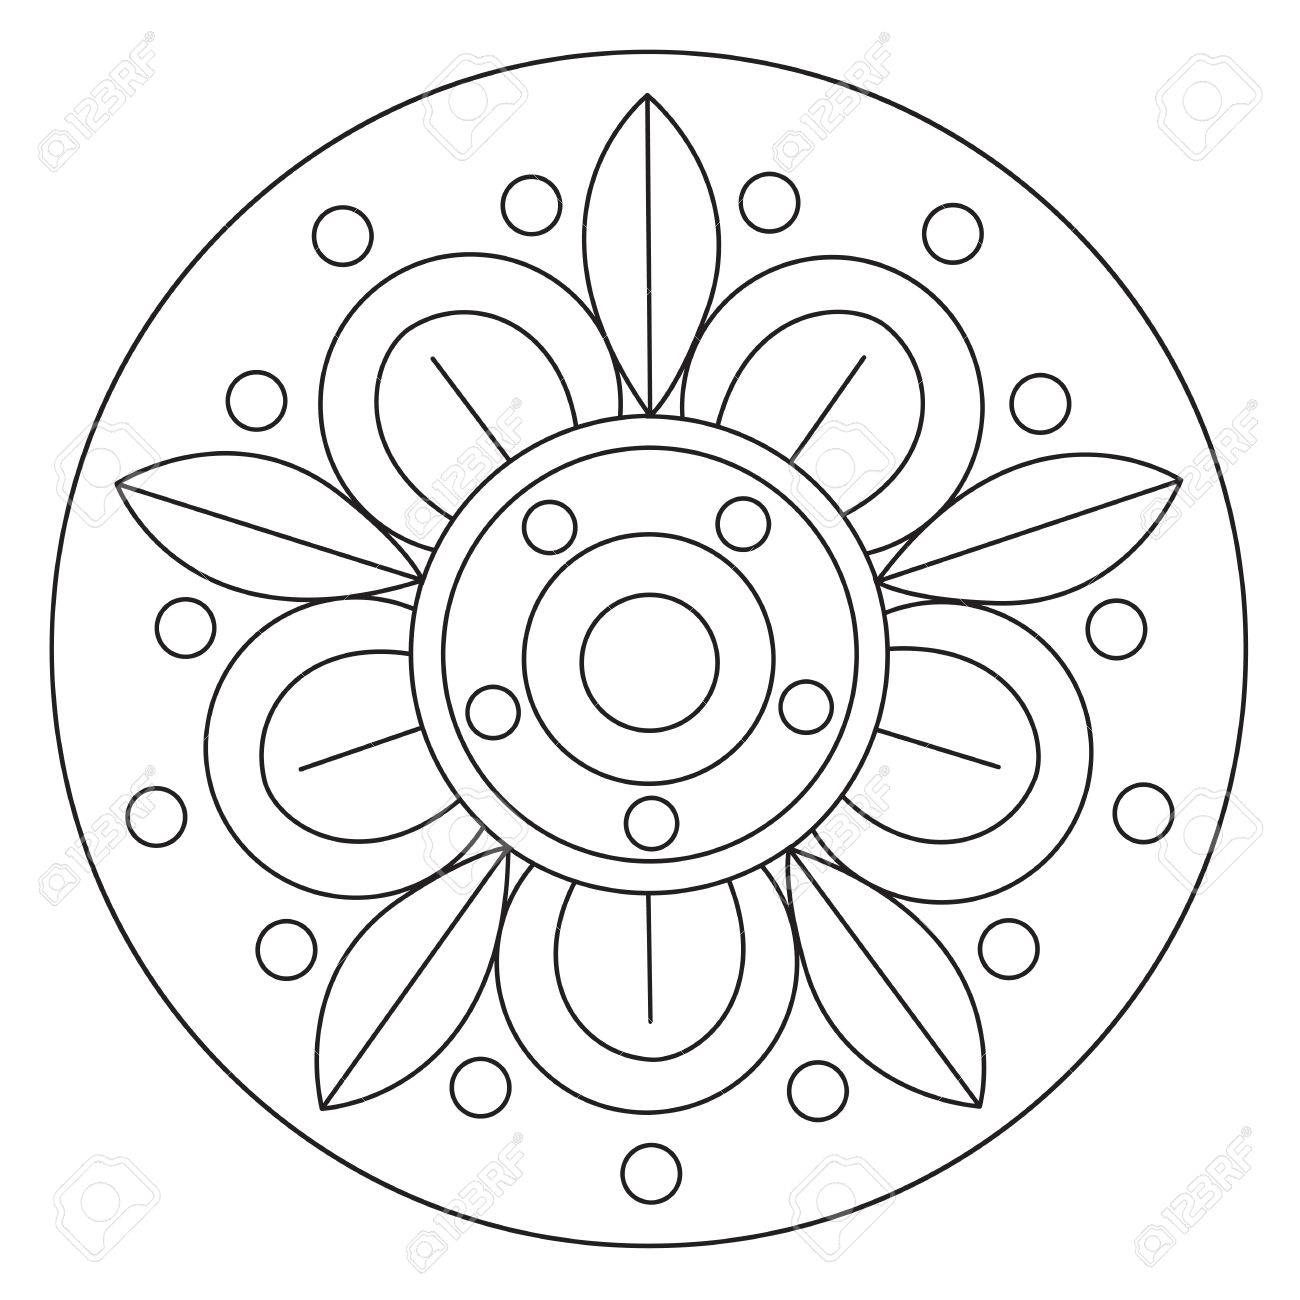 Colorear Vector Grande Simple Mandala De La Flor Para Los Niños